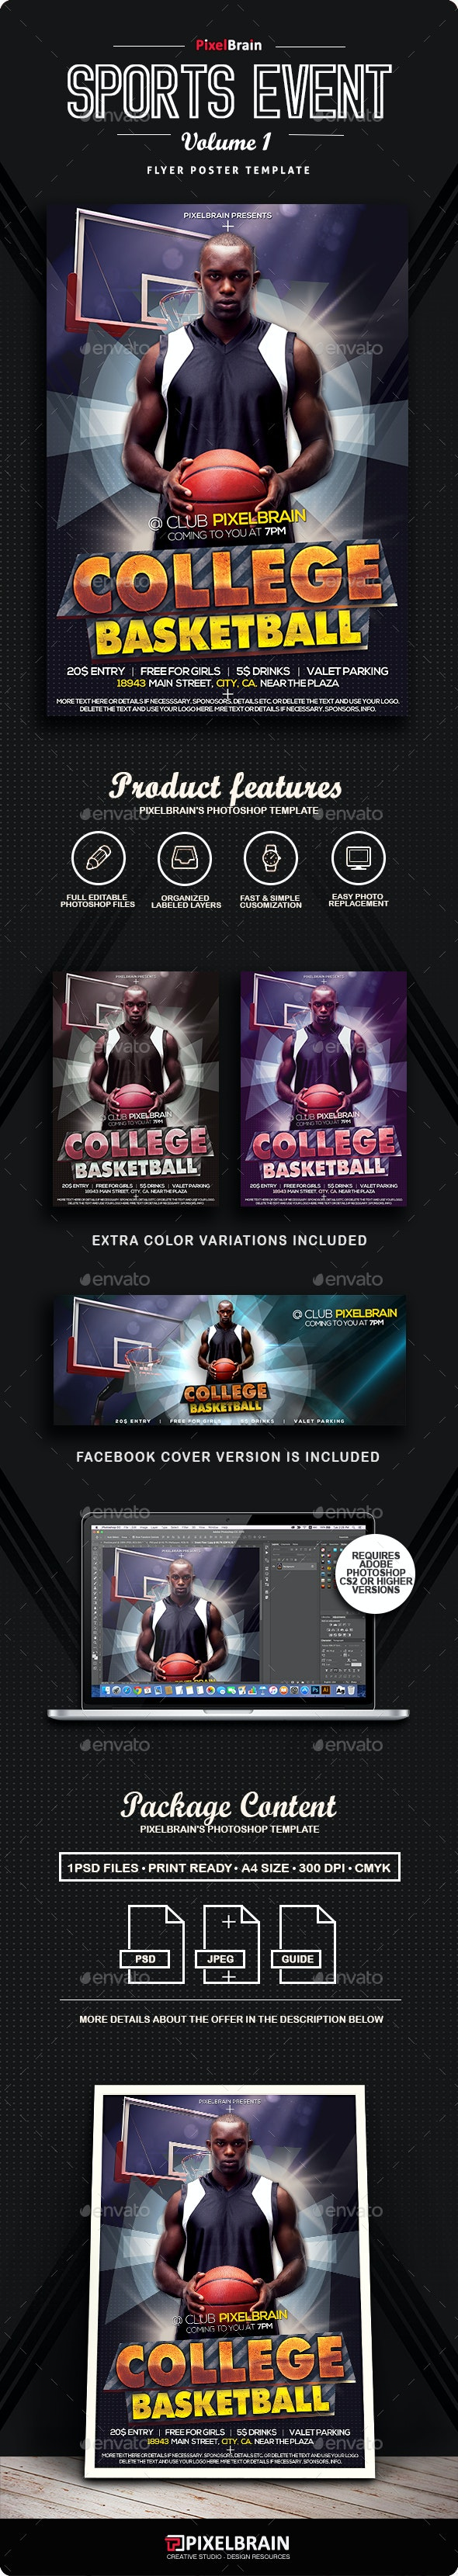 Basketball Flyer/Poster Vol. 1 - Sports Events